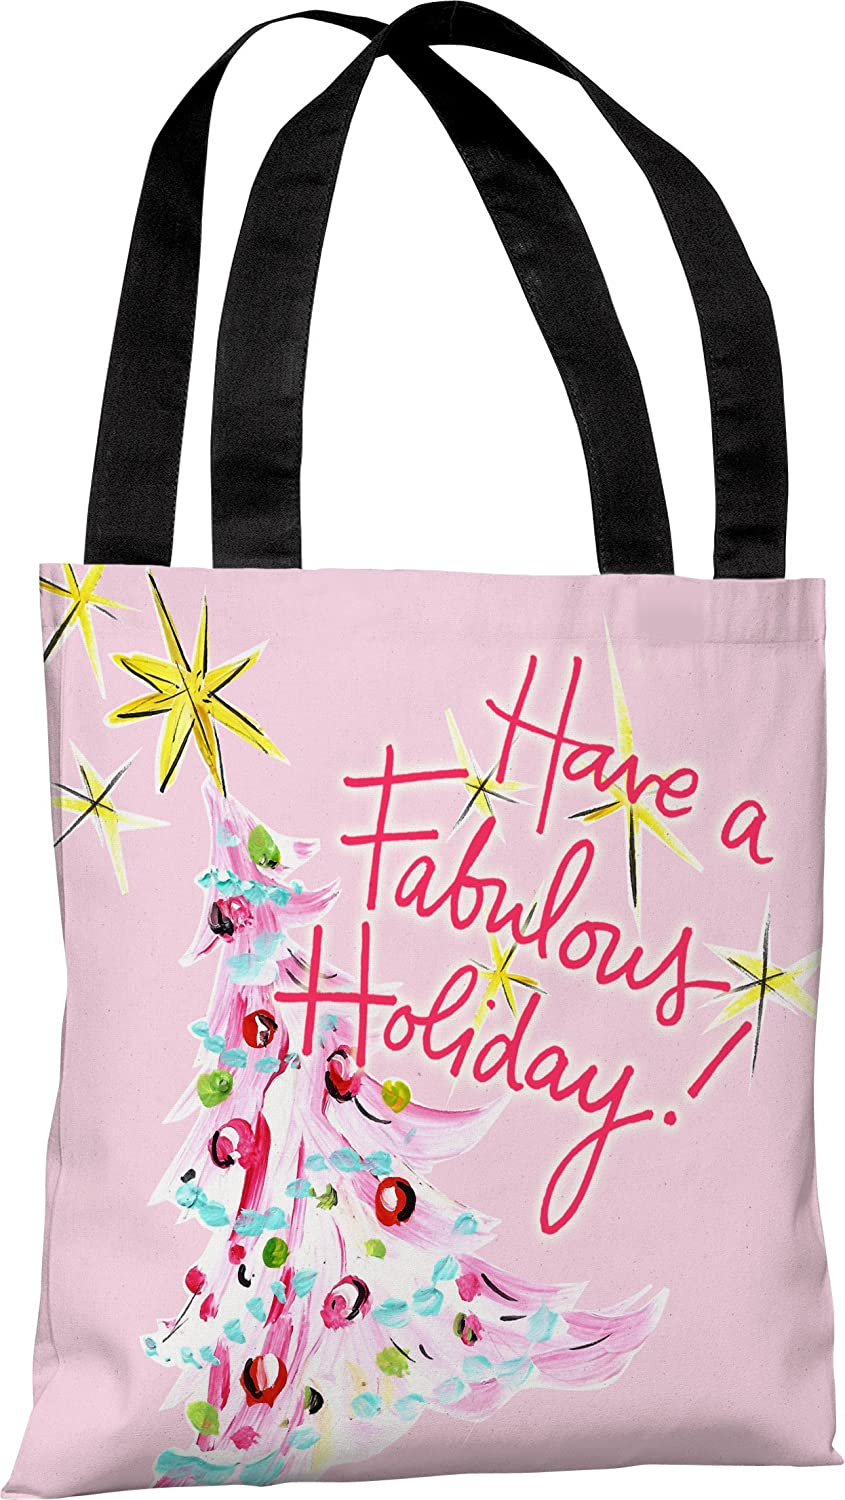 One Bella Casa Fabulous Holiday Tote Bag by Timree Gold 18x 18 Pink//Multi